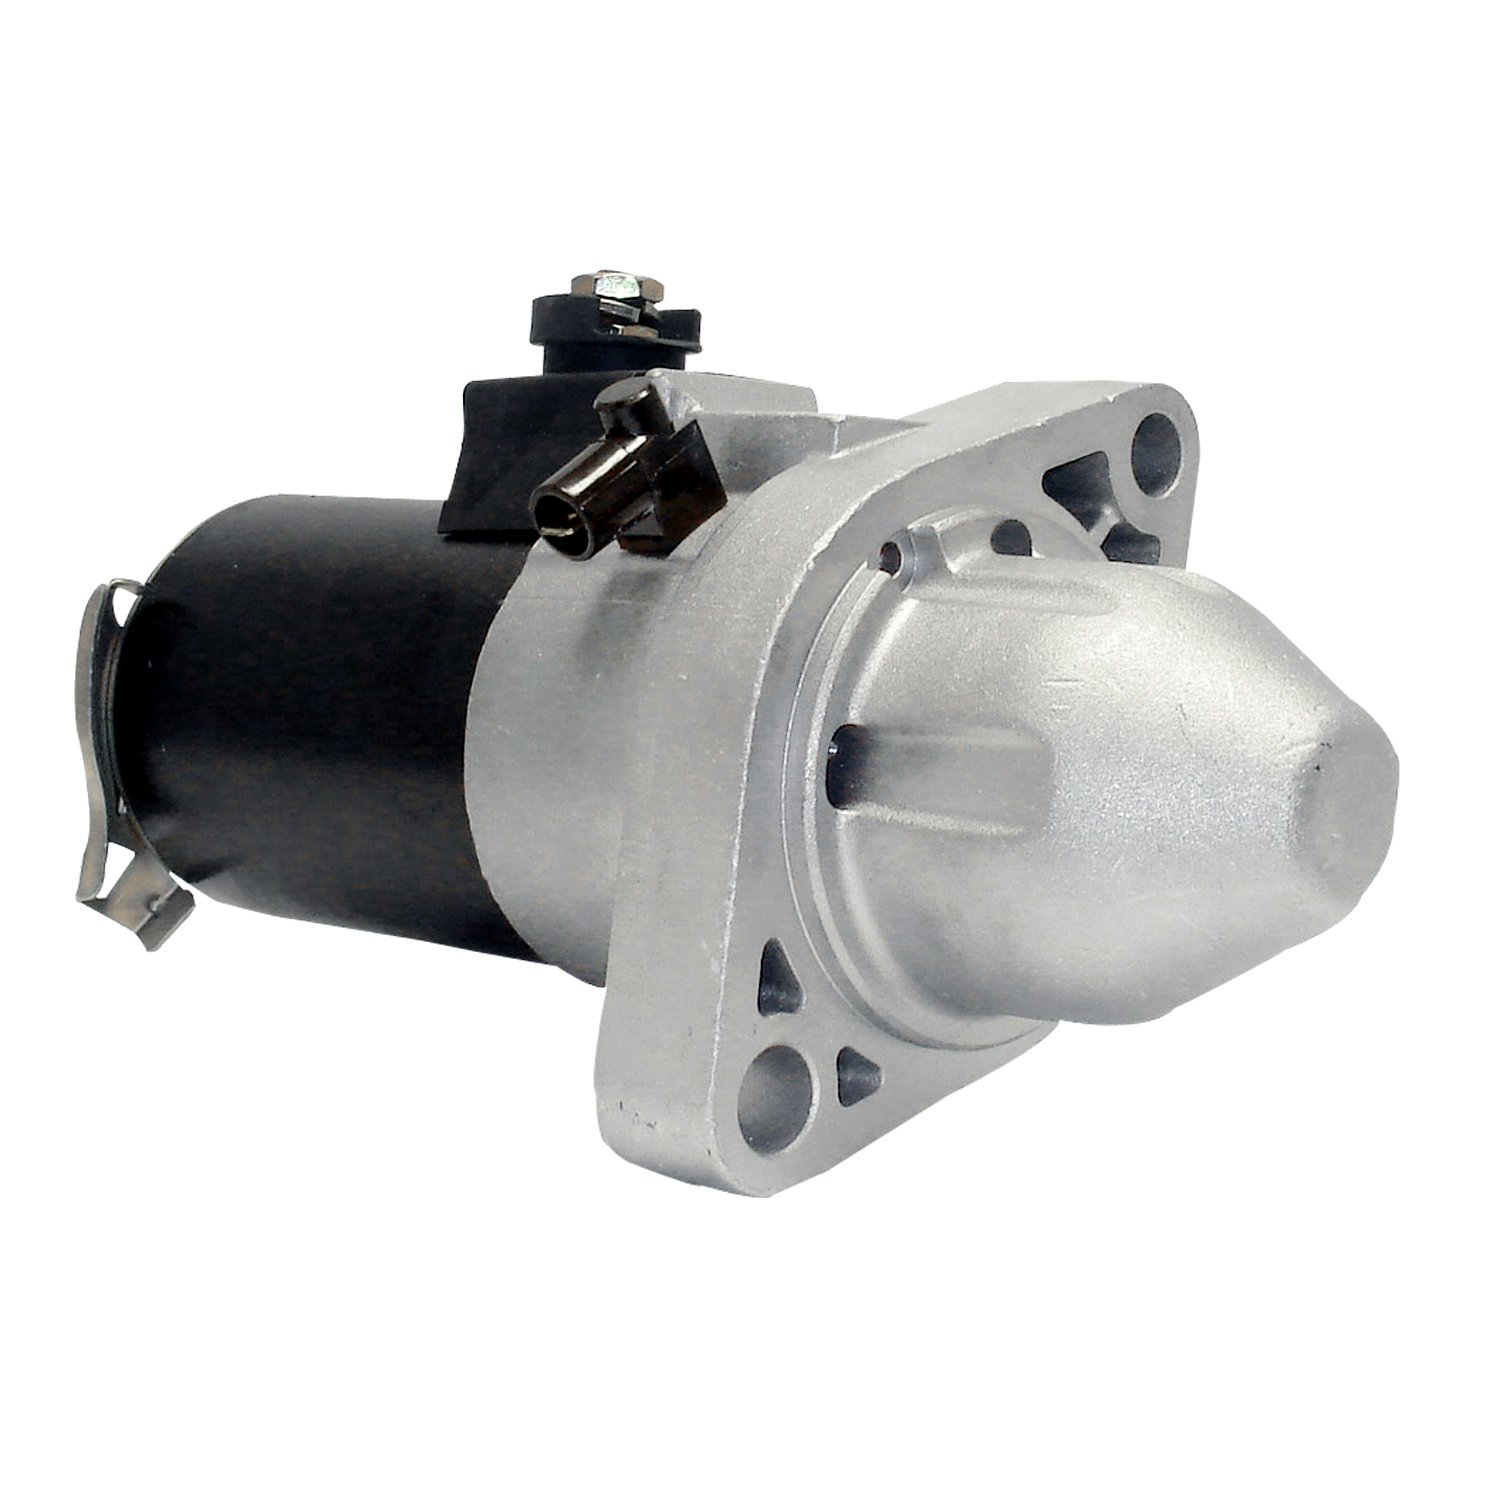 ACDelco 336-1955 Professional Starter, Remanufactured by ACDelco